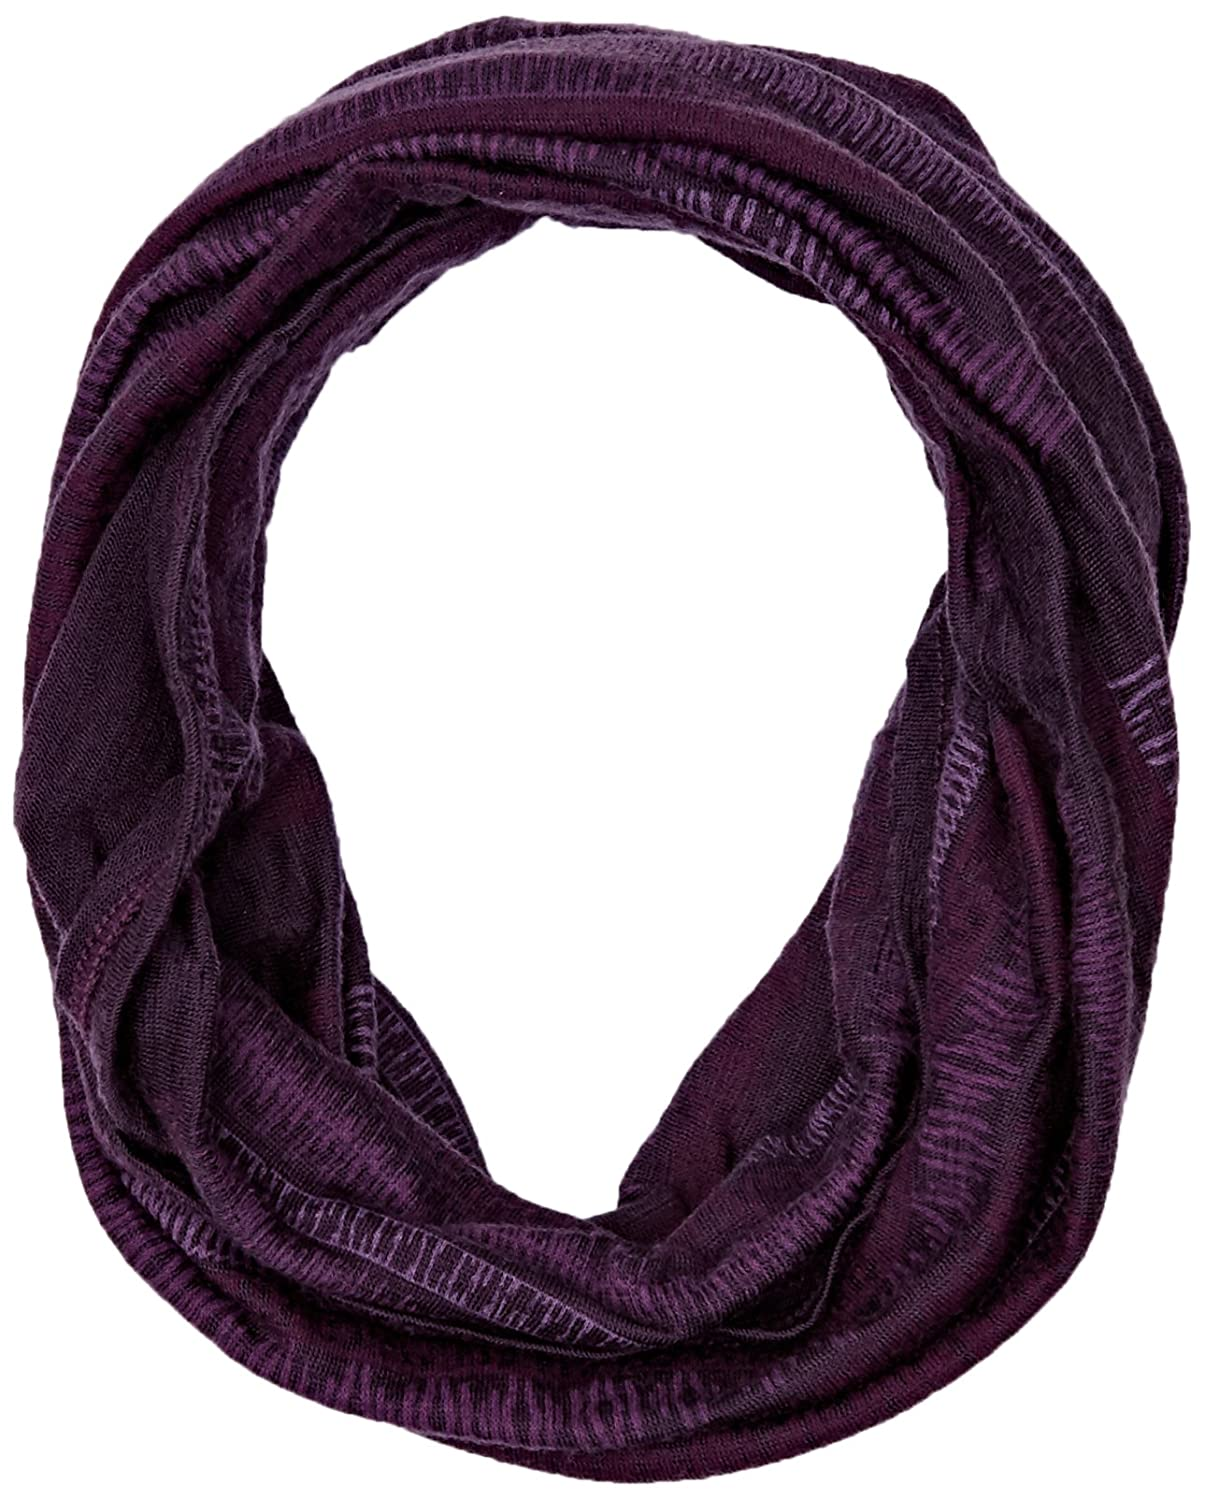 TALLA Adulto. Original Buff Merino Wool Lisha Plum Tubular de Fibra Natural, Unisex Adulto